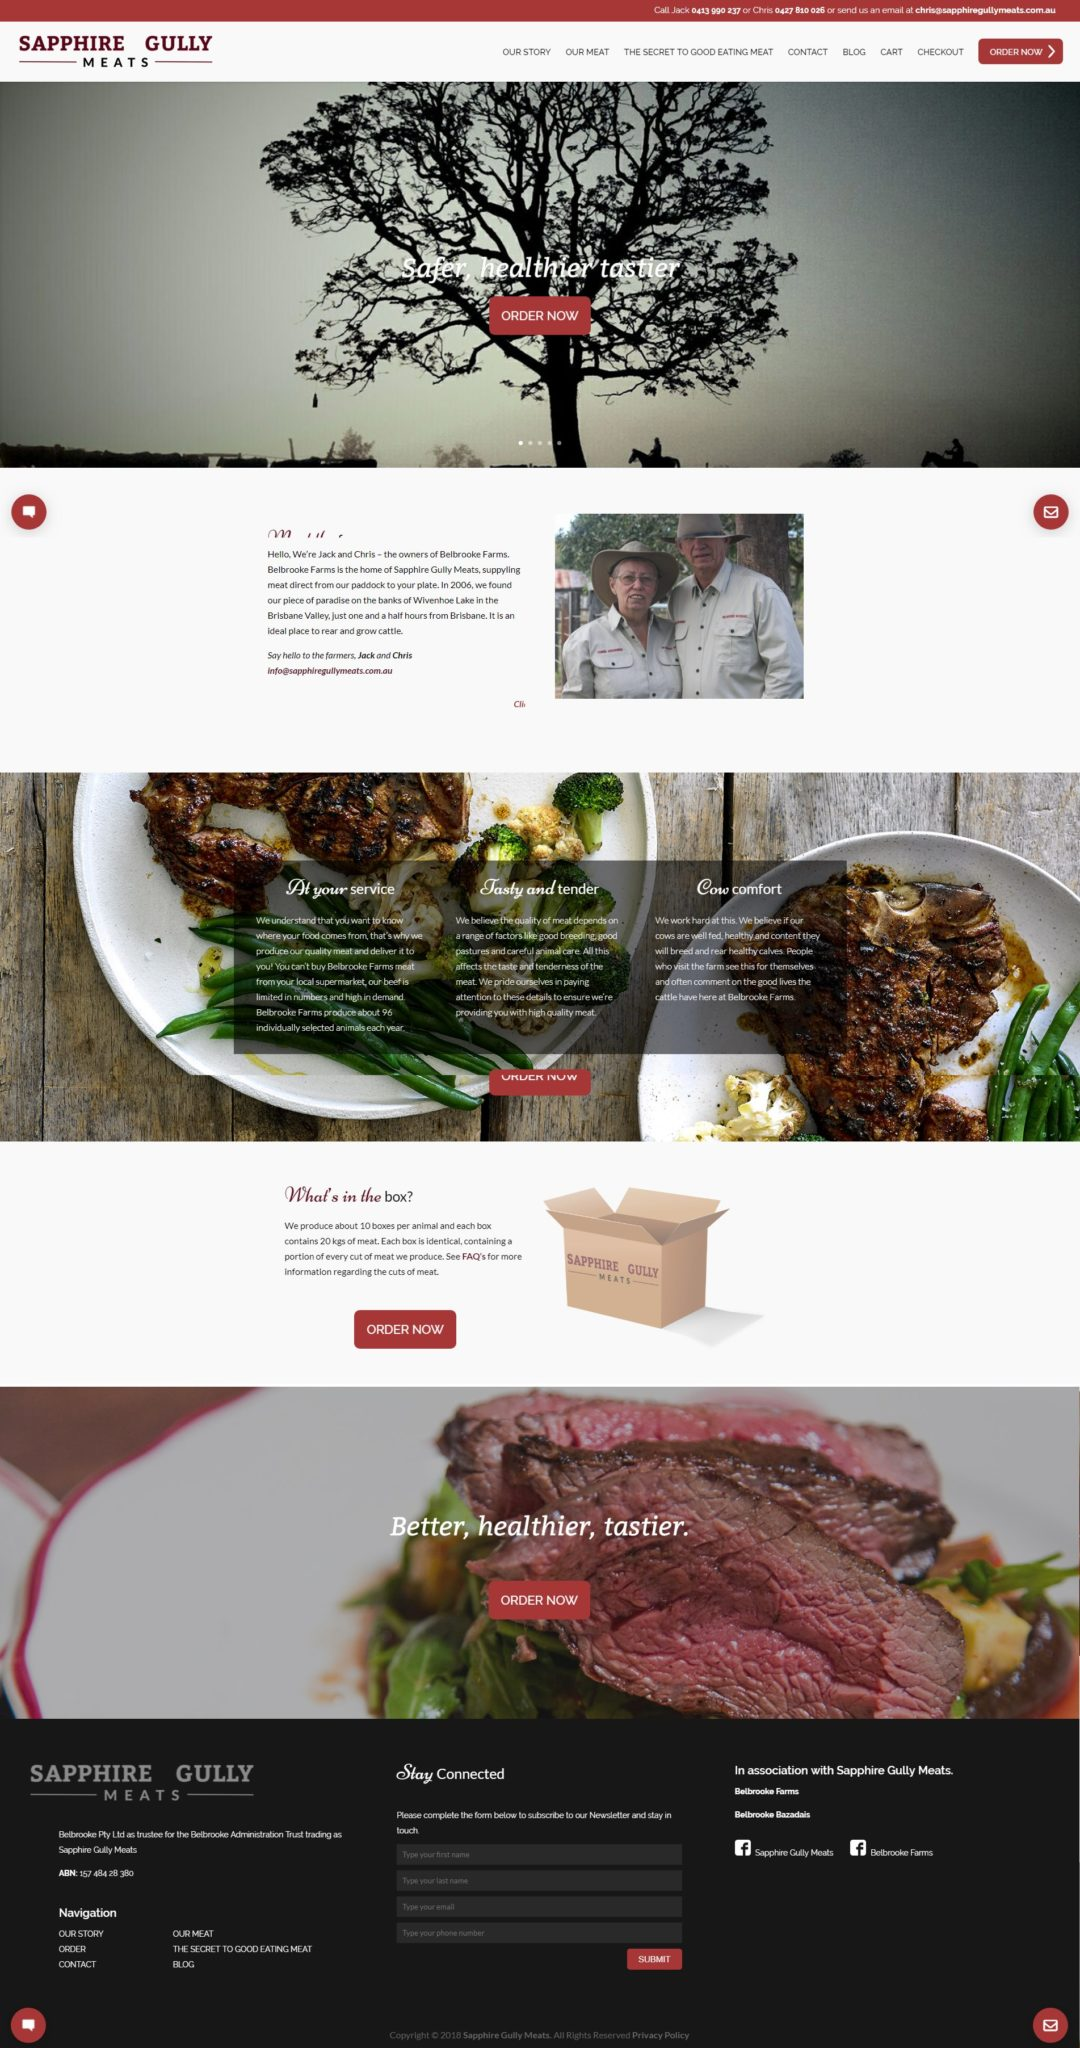 Sapphire Gully Meats – Website & Digital Marketing